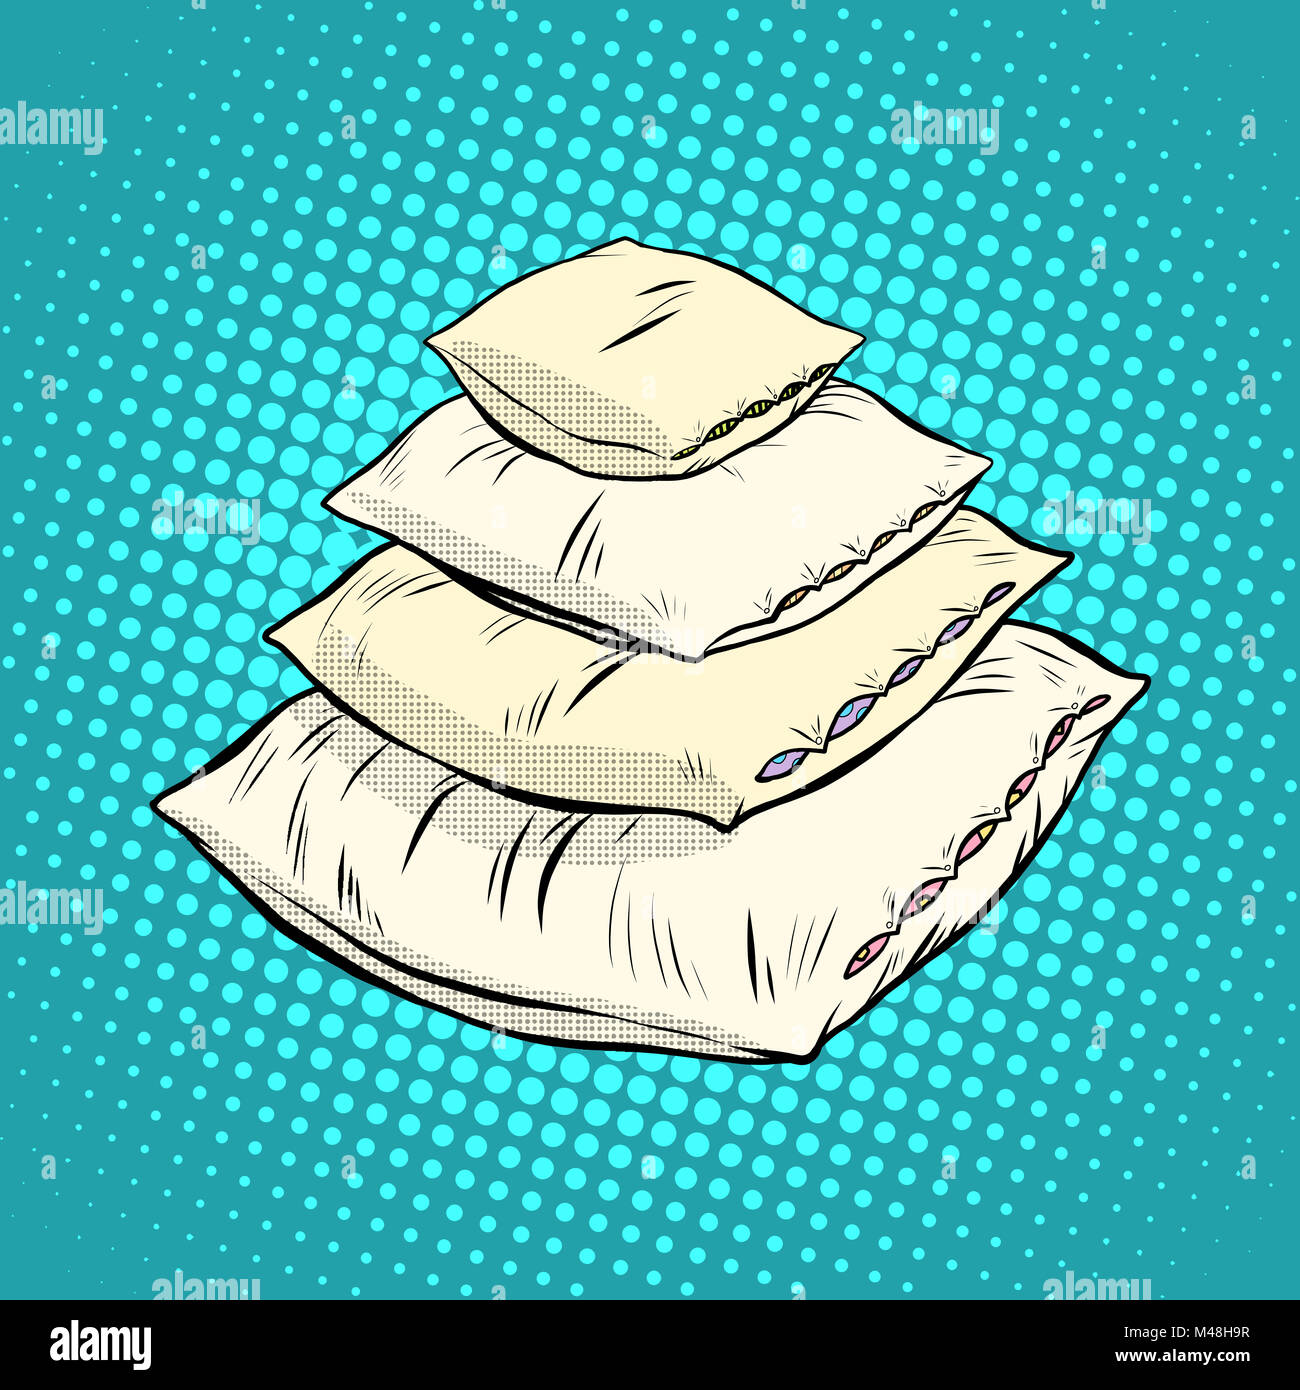 Realistic white pillows, retro vector - Stock Image